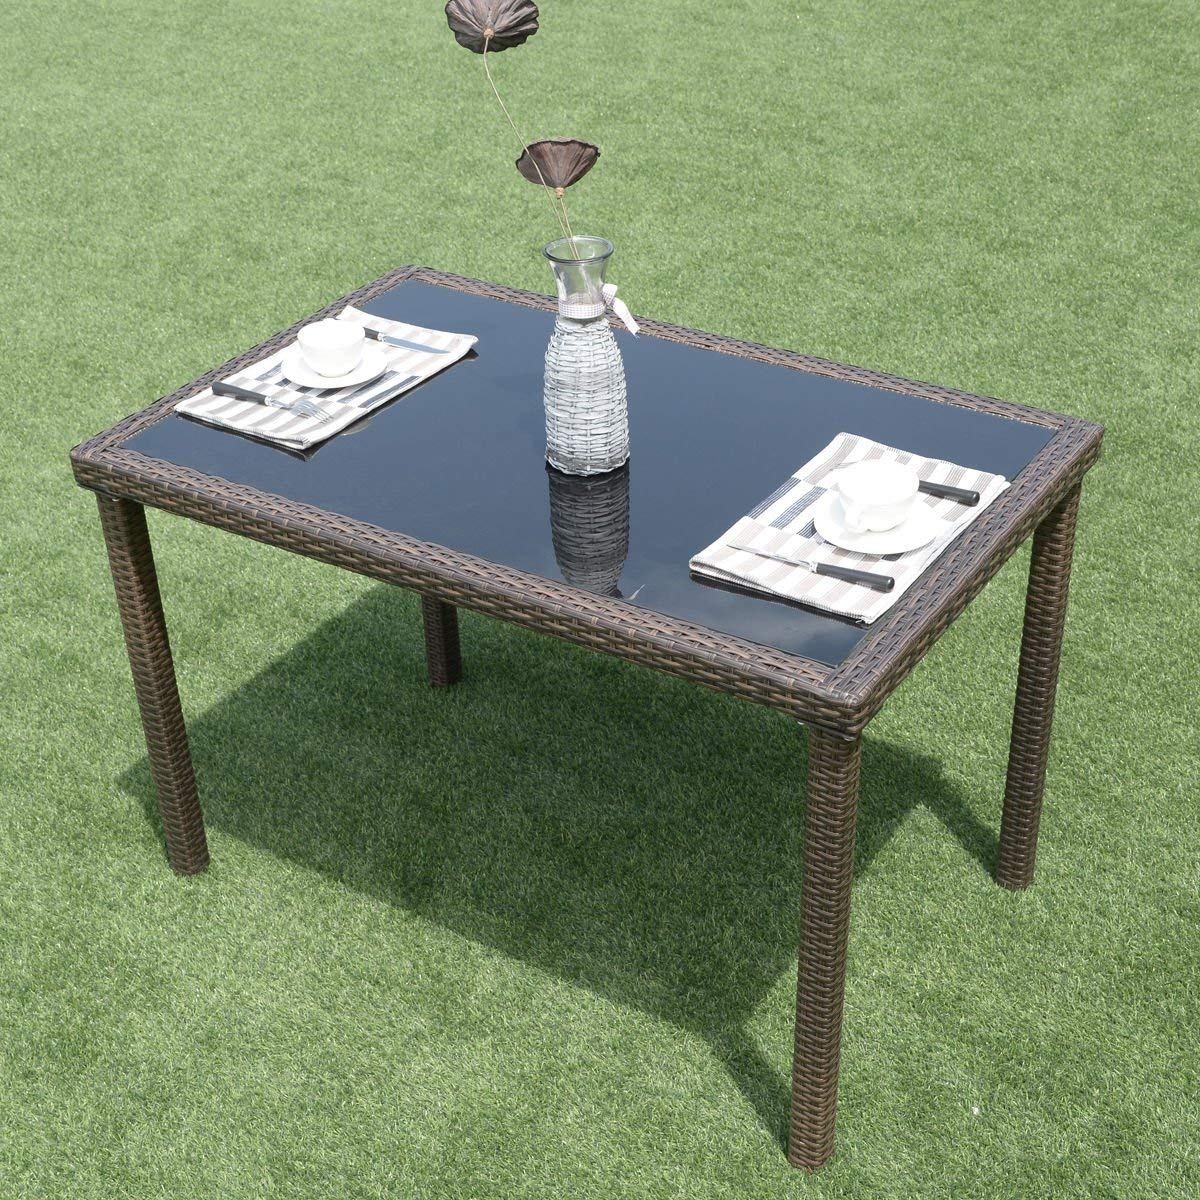 Wenst'sKufAN Outdoor Wicker Dining Table Tempered Glass Top and Metal Frame Side Table Patio Dining Table Coffee Tea Table Patio Balcony Pool Garden